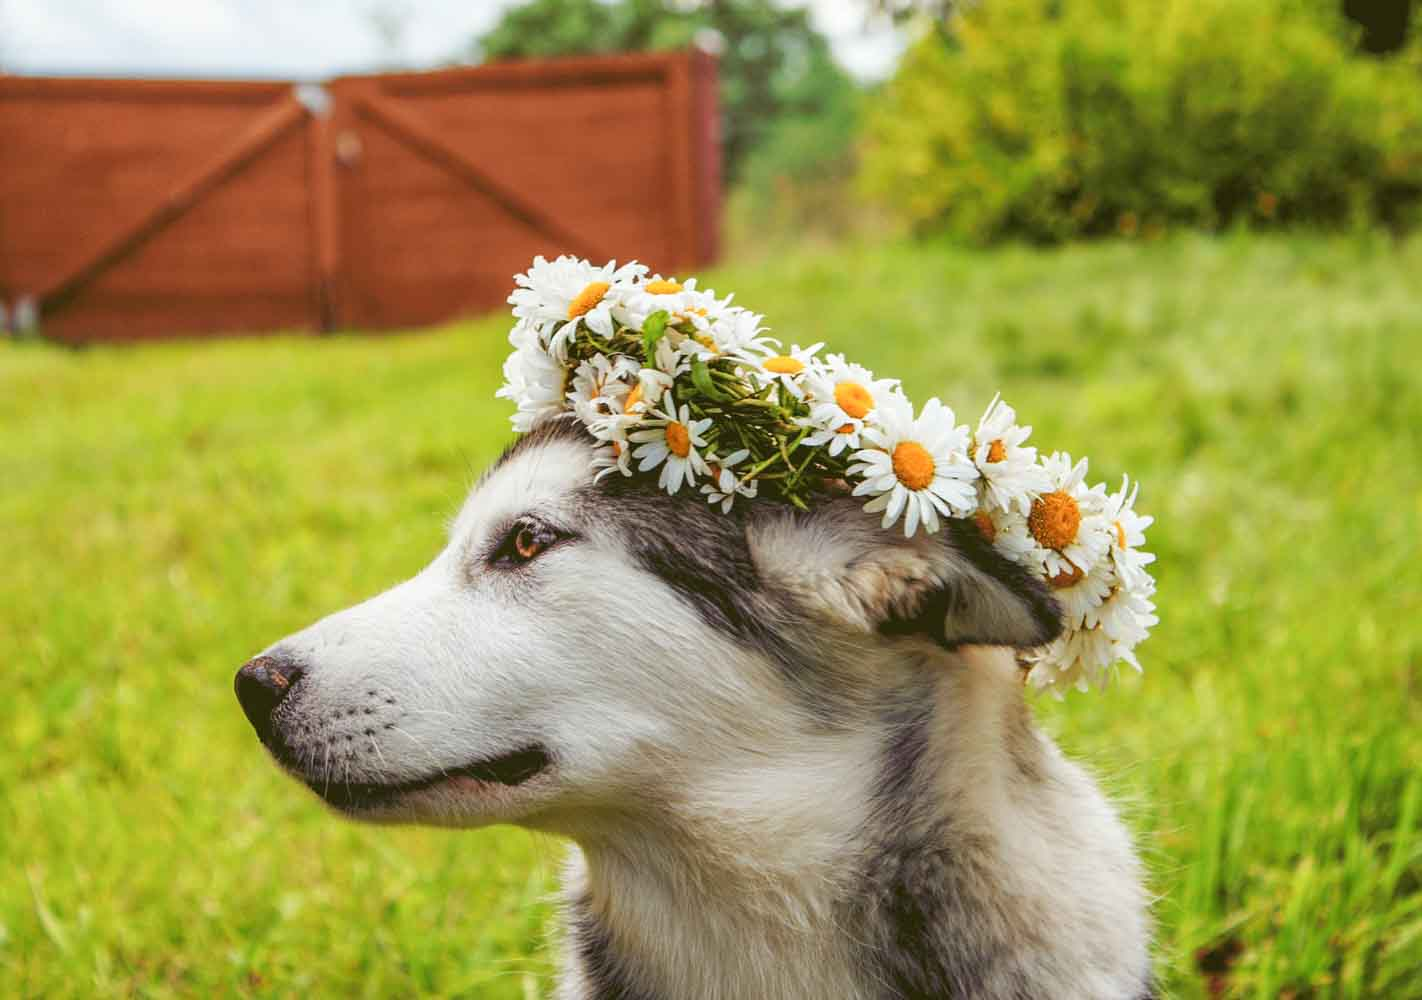 We all want our fur friend to be part of our lives. Think about including your handsome fur baby in your wedding today.